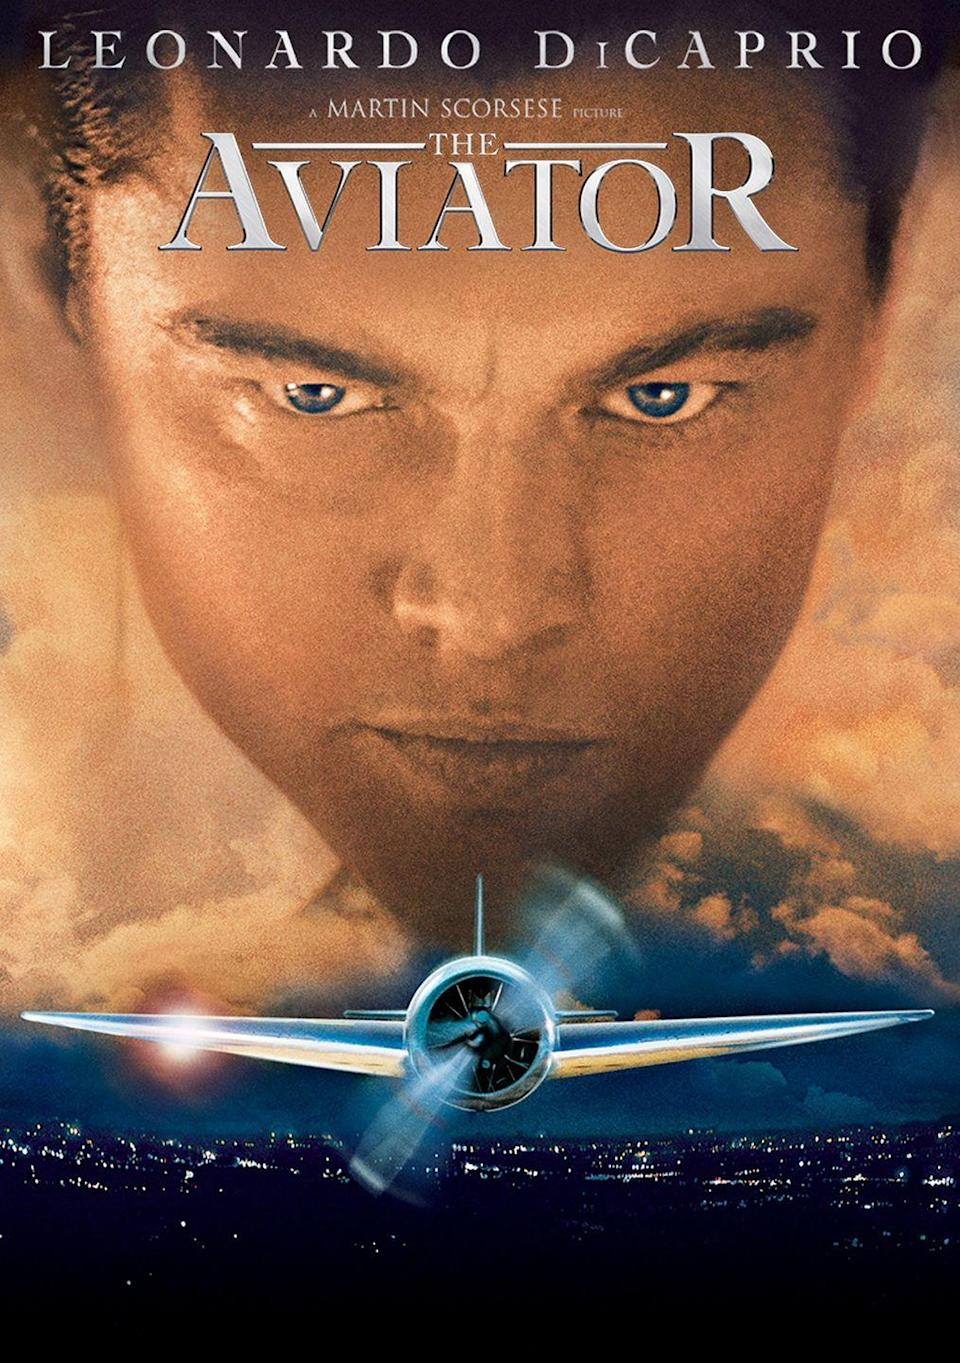 """<p><a class=""""link rapid-noclick-resp"""" href=""""https://www.amazon.com/Aviator-Leonardo-DiCaprio/dp/B001N09BDS?tag=syn-yahoo-20&ascsubtag=%5Bartid%7C10067.g.15907978%5Bsrc%7Cyahoo-us"""" rel=""""nofollow noopener"""" target=""""_blank"""" data-ylk=""""slk:Watch Now"""">Watch Now </a></p><p>Leonardo DiCaprio stars in this Academy Award-winning biopic of the enigmatically brilliant billionaire Howard Hughes, from his early years as a film director and aviation enthusiast to his downward spiral into the mental illness and phobia that would define the tycoon's later years. </p>"""